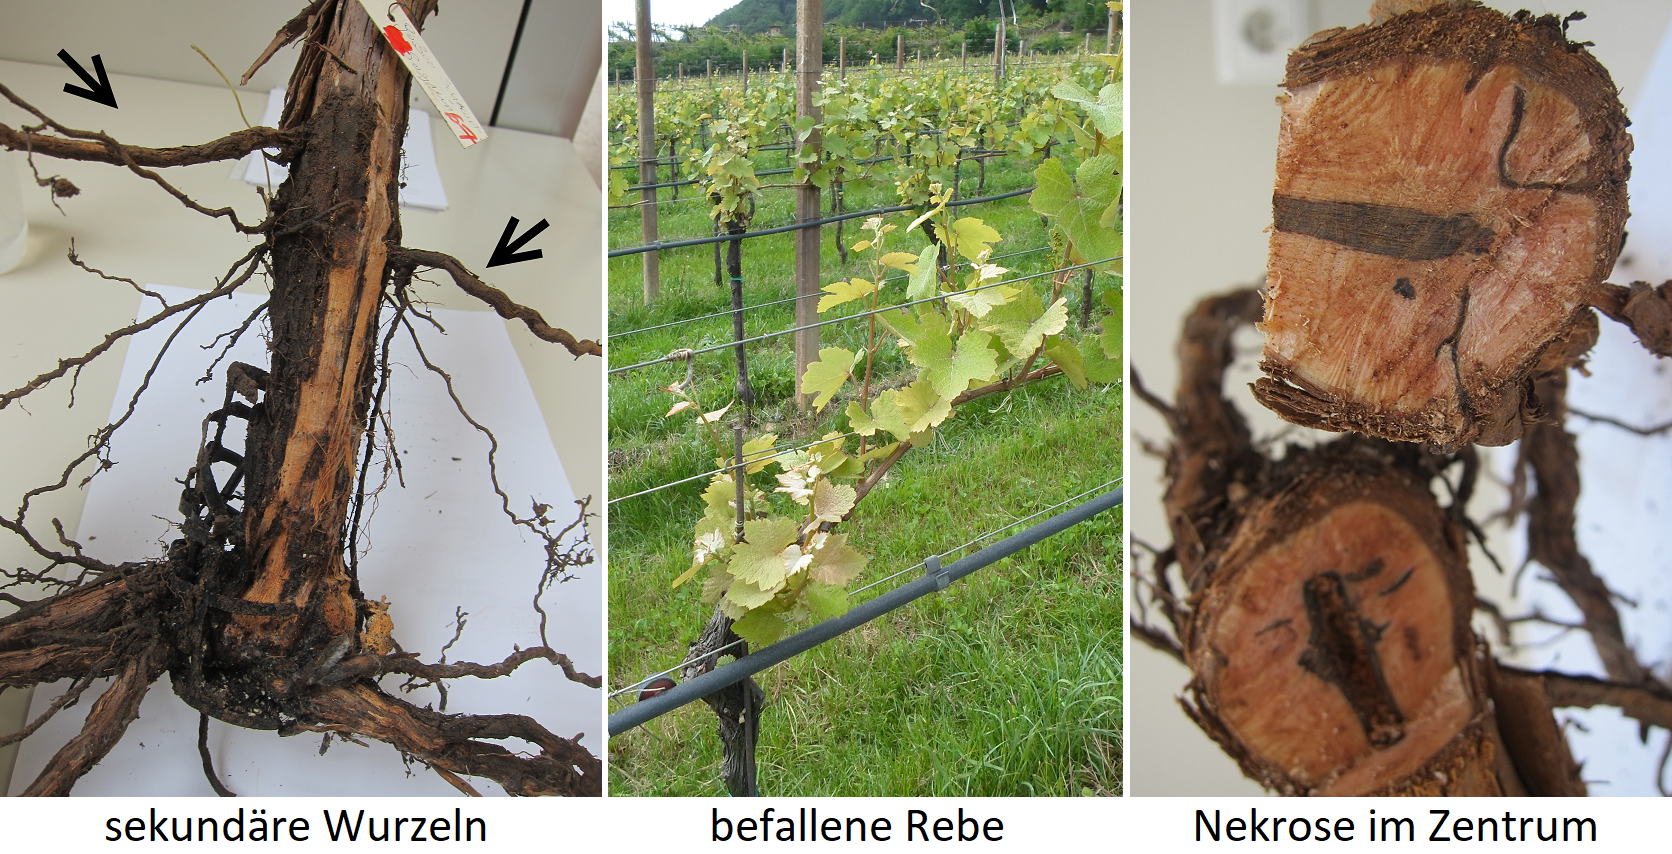 Black-foot disease - secondary roots, infested vine and necrosis in the stem center